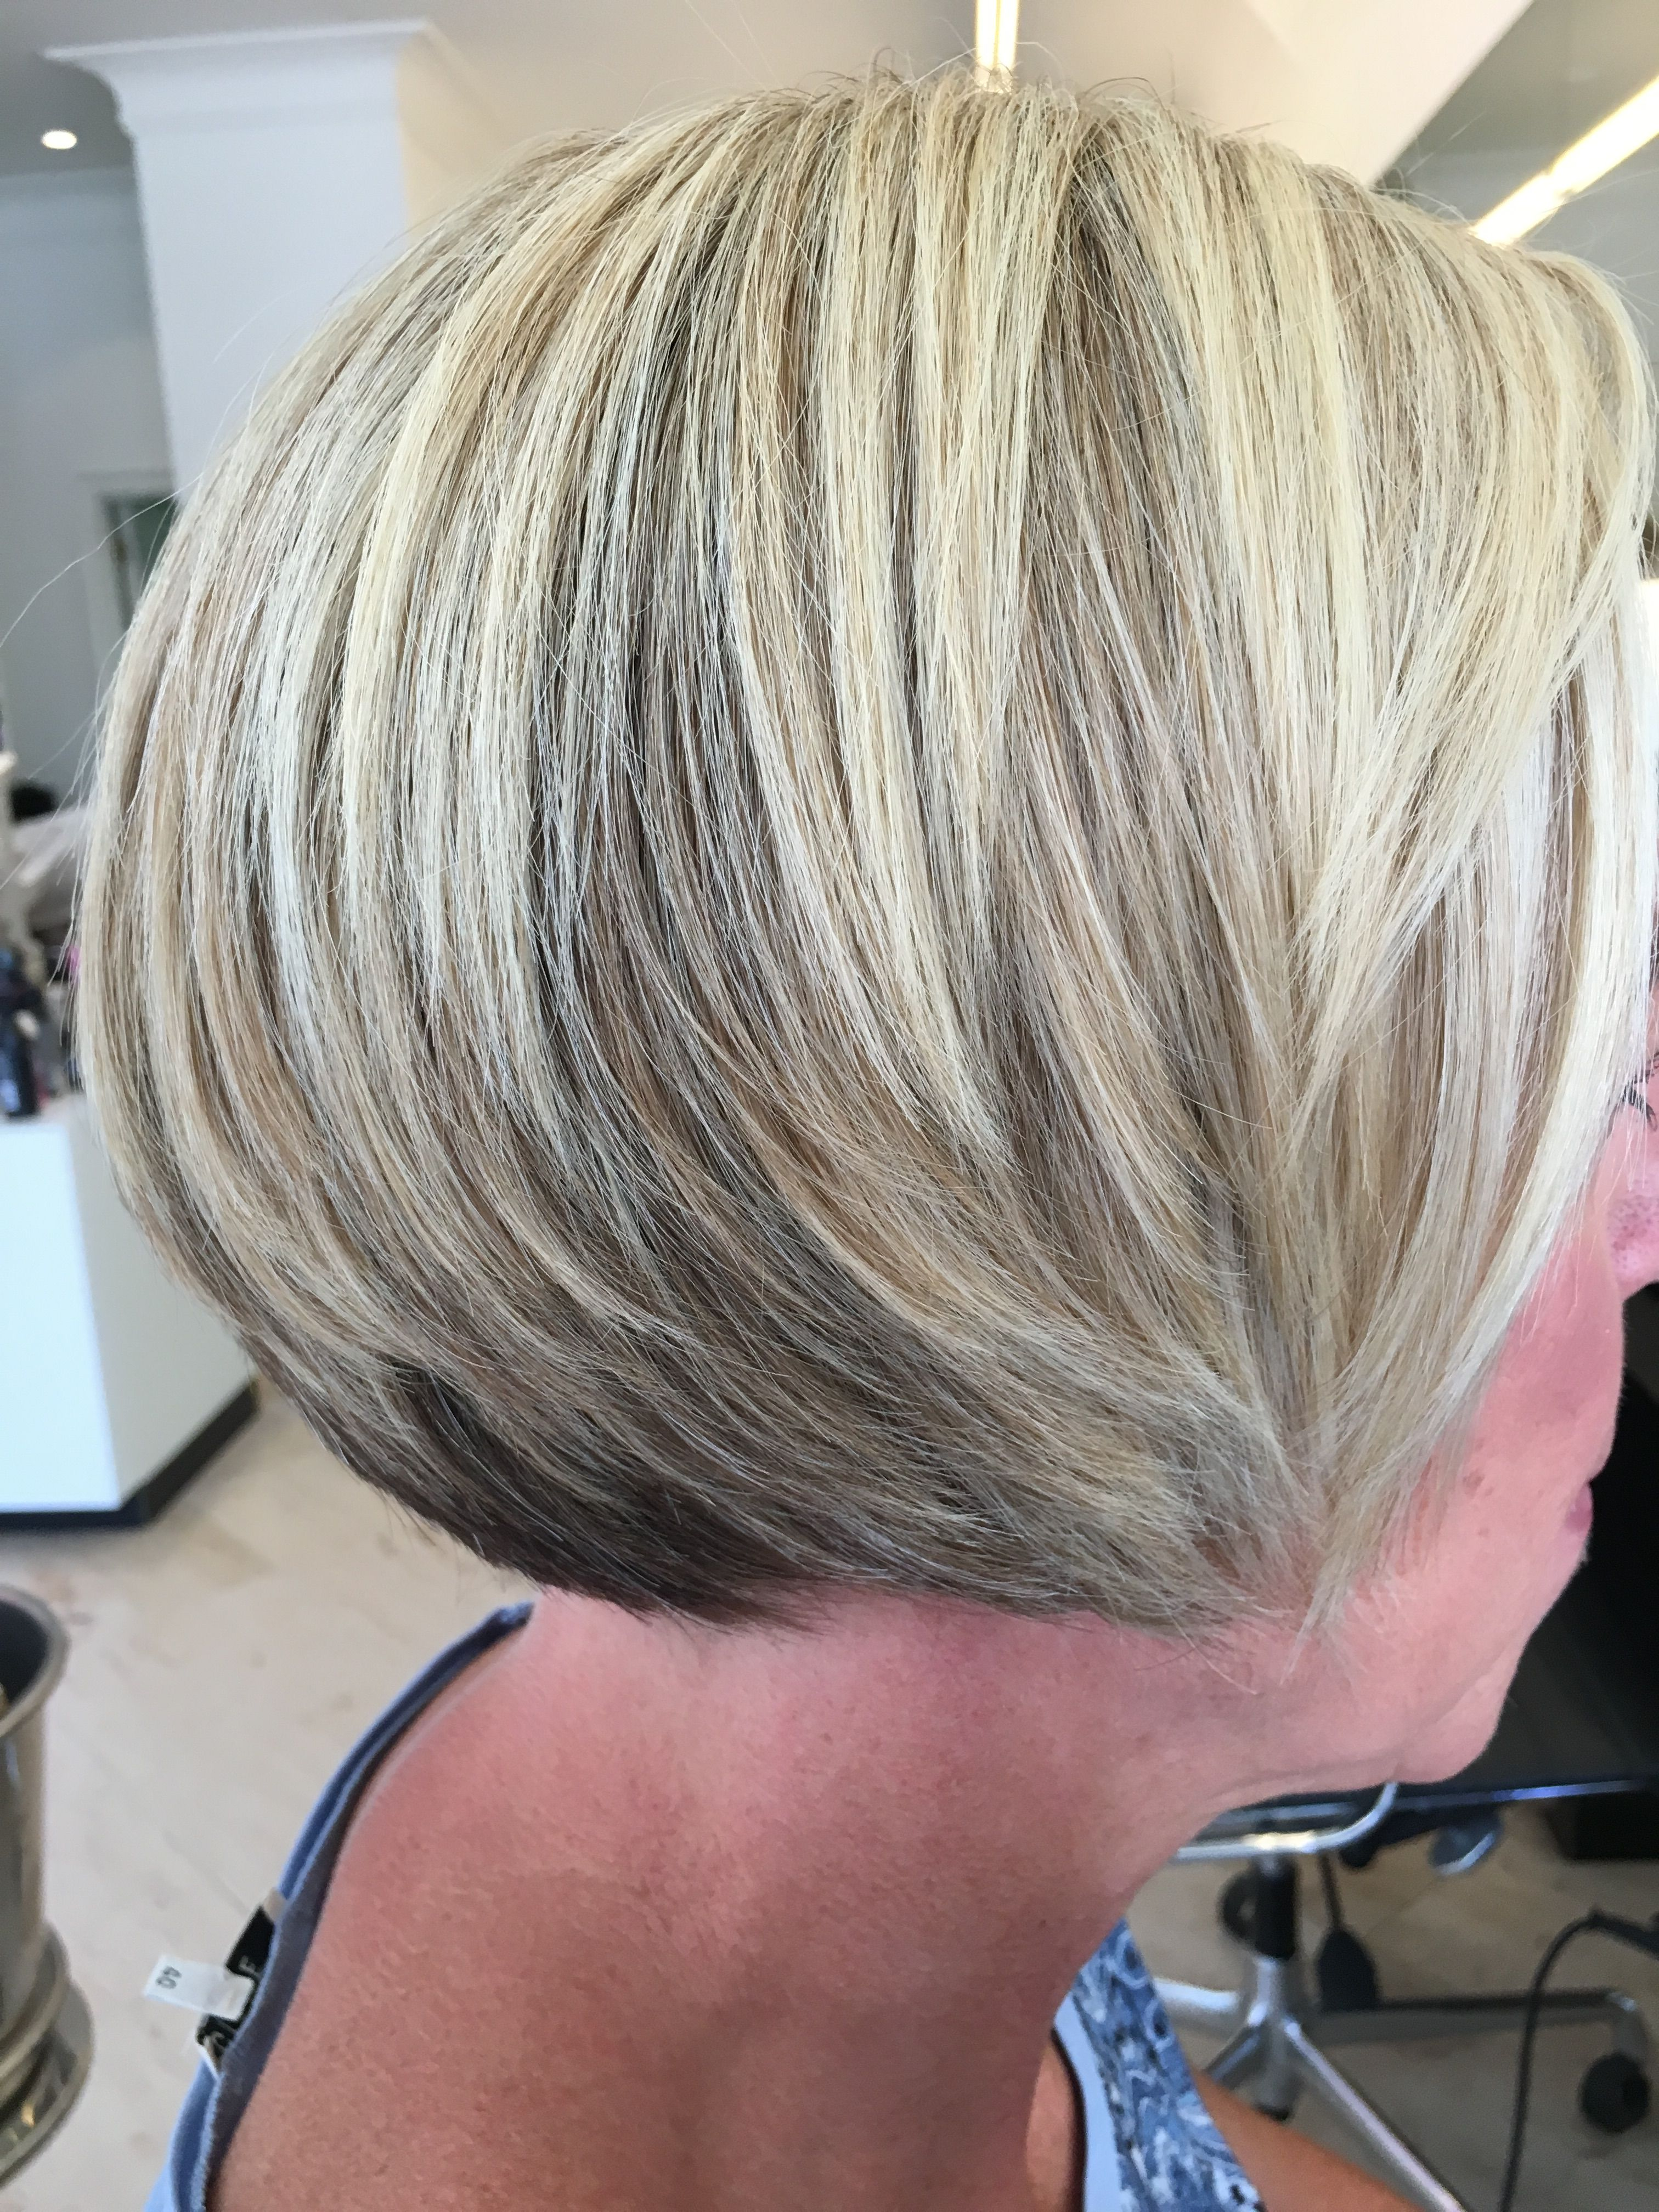 Kort Blond Haar Met Highlights Short Hair Styles Hair Styles Hair